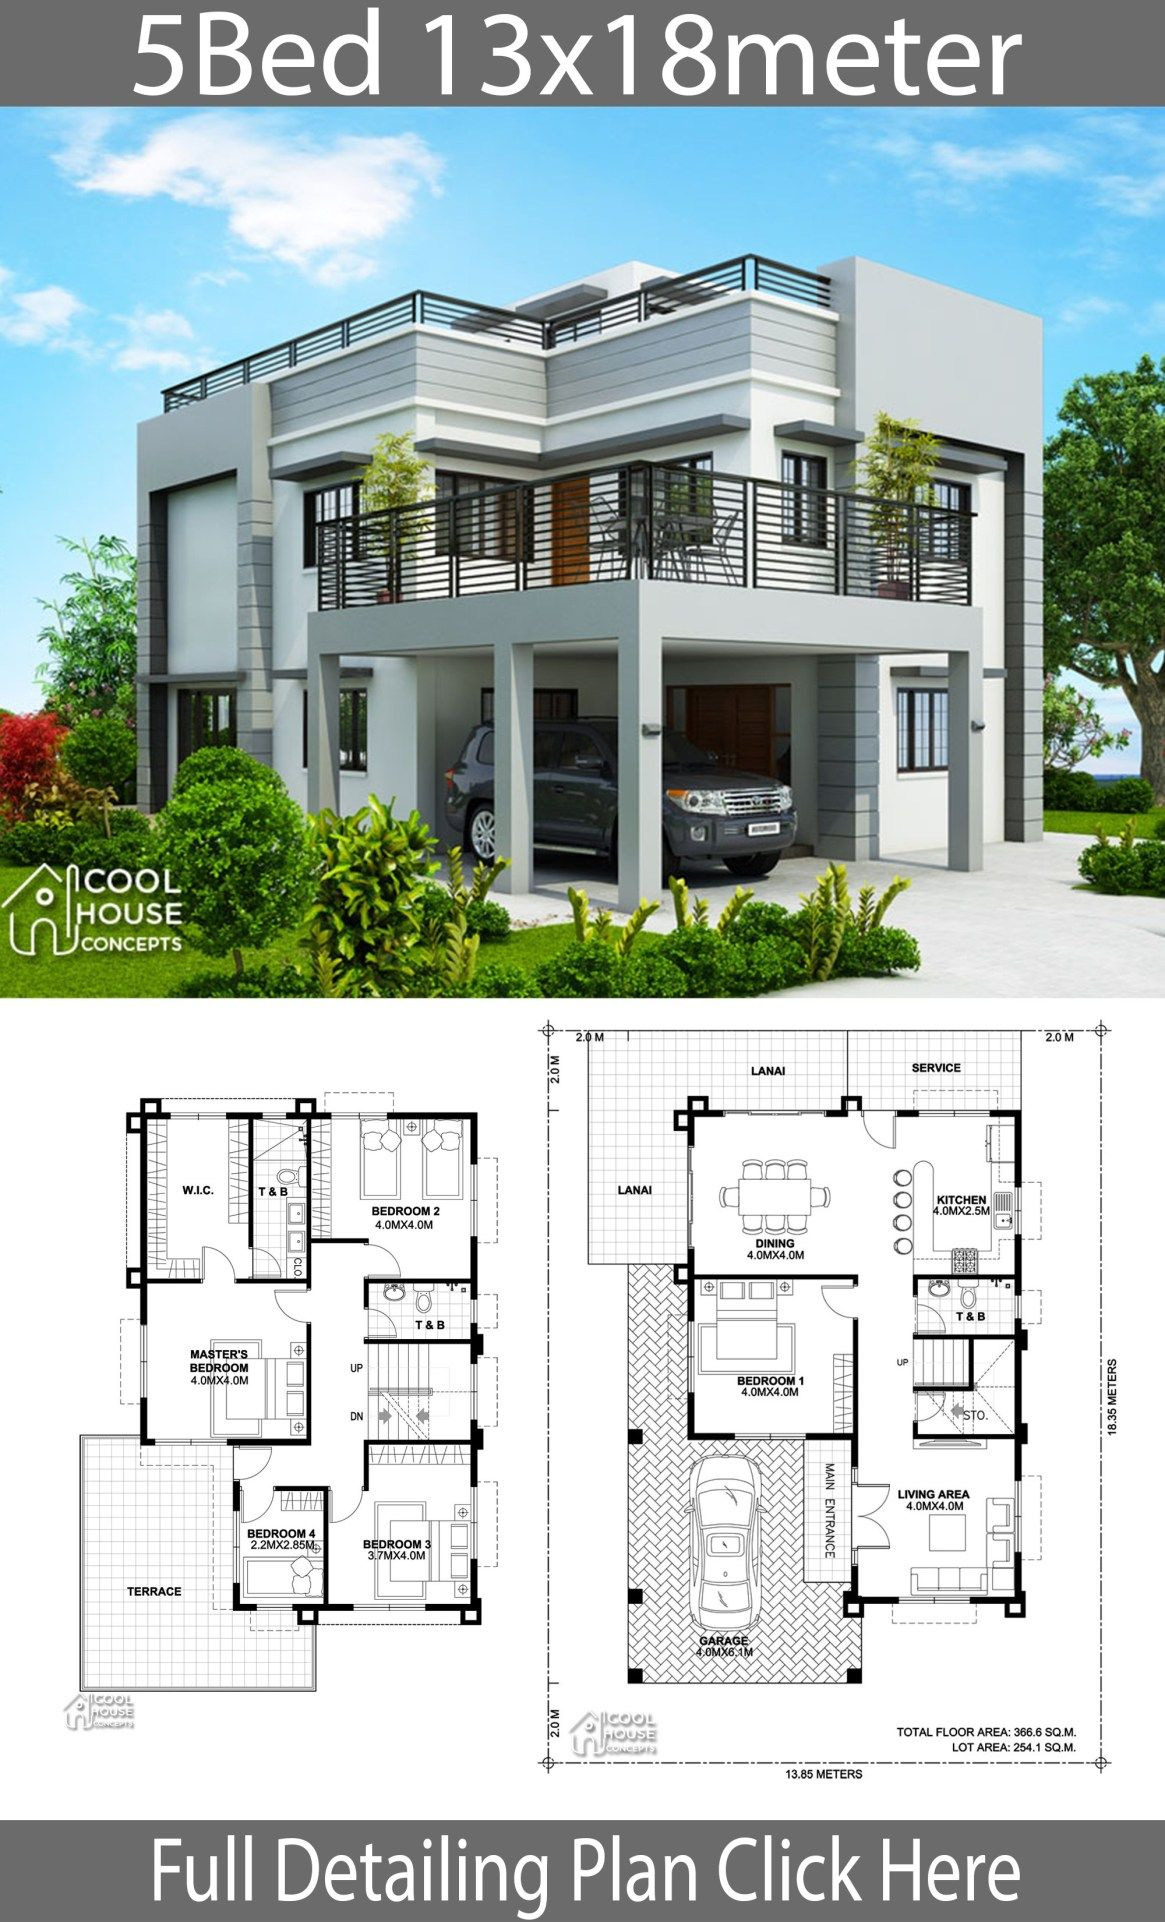 Plan for Houses Design Luxury Home Design Plan 13x18m with 5 Bedrooms